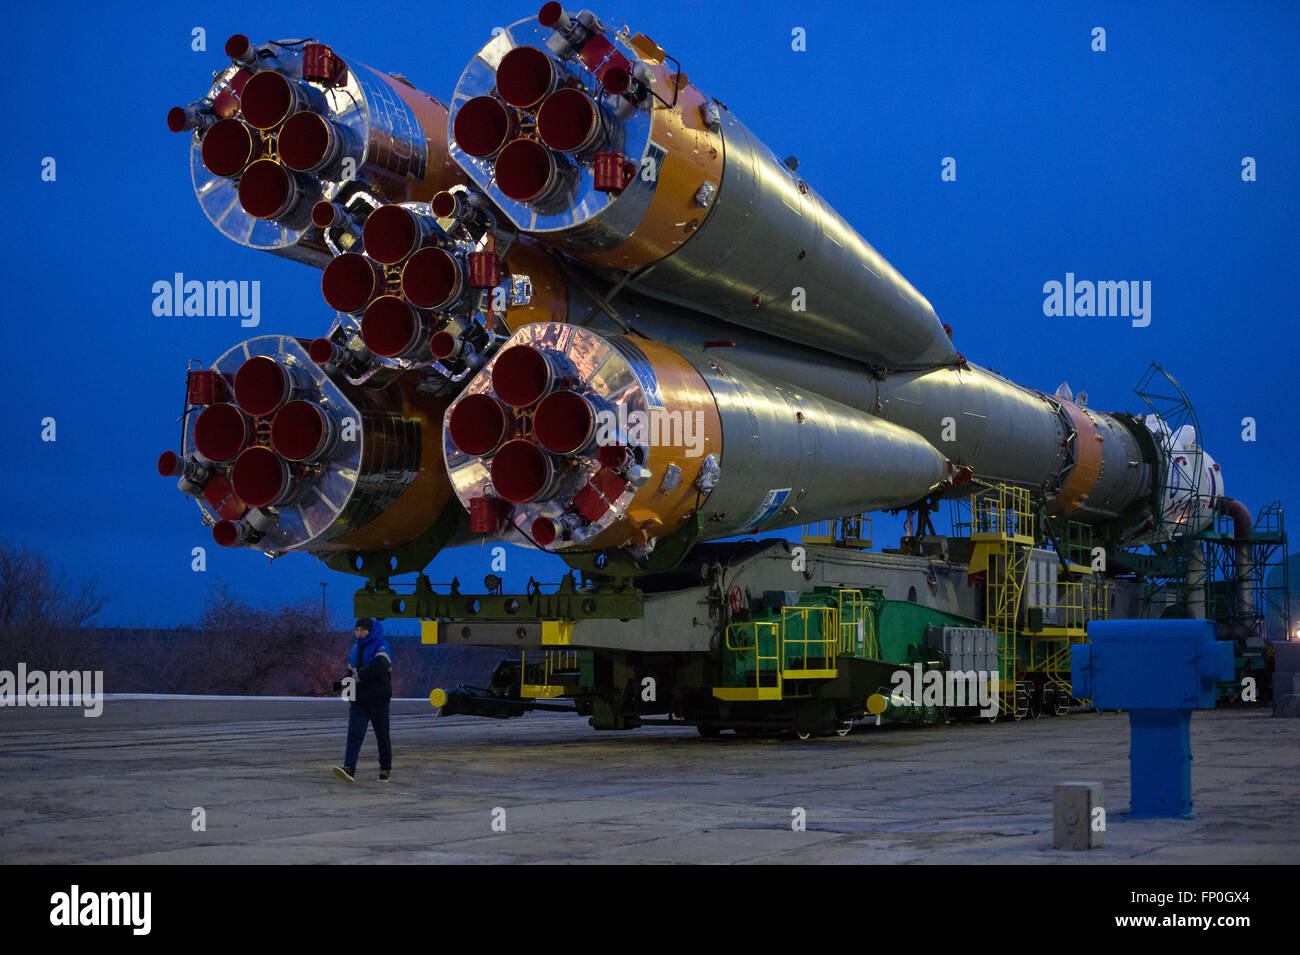 Baikonur, Kazakhstan. 16th Mar, 2016. The Soyuz TMA-20M spacecraft is rolled out to the launch pad by train at the - Stock Image